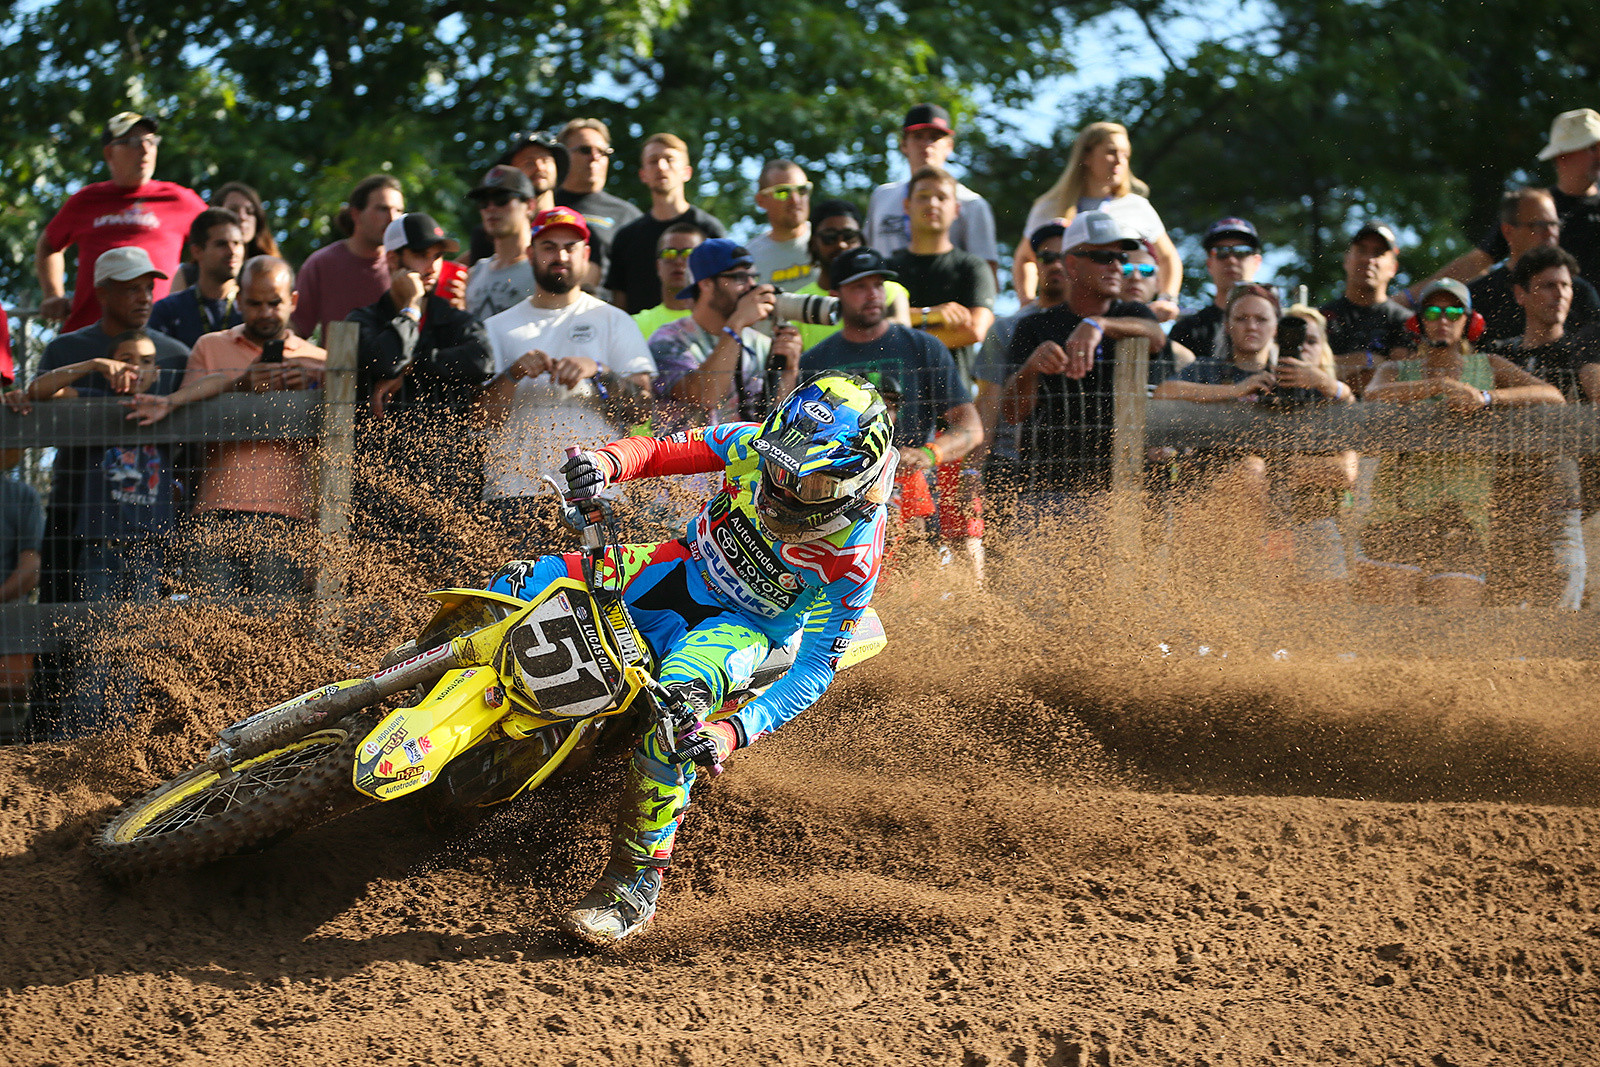 Heartbreaker of the weekend? That likely goes to Justin Barcia, who ran out of gas short of the finish line in moto one while running in fourth spot.